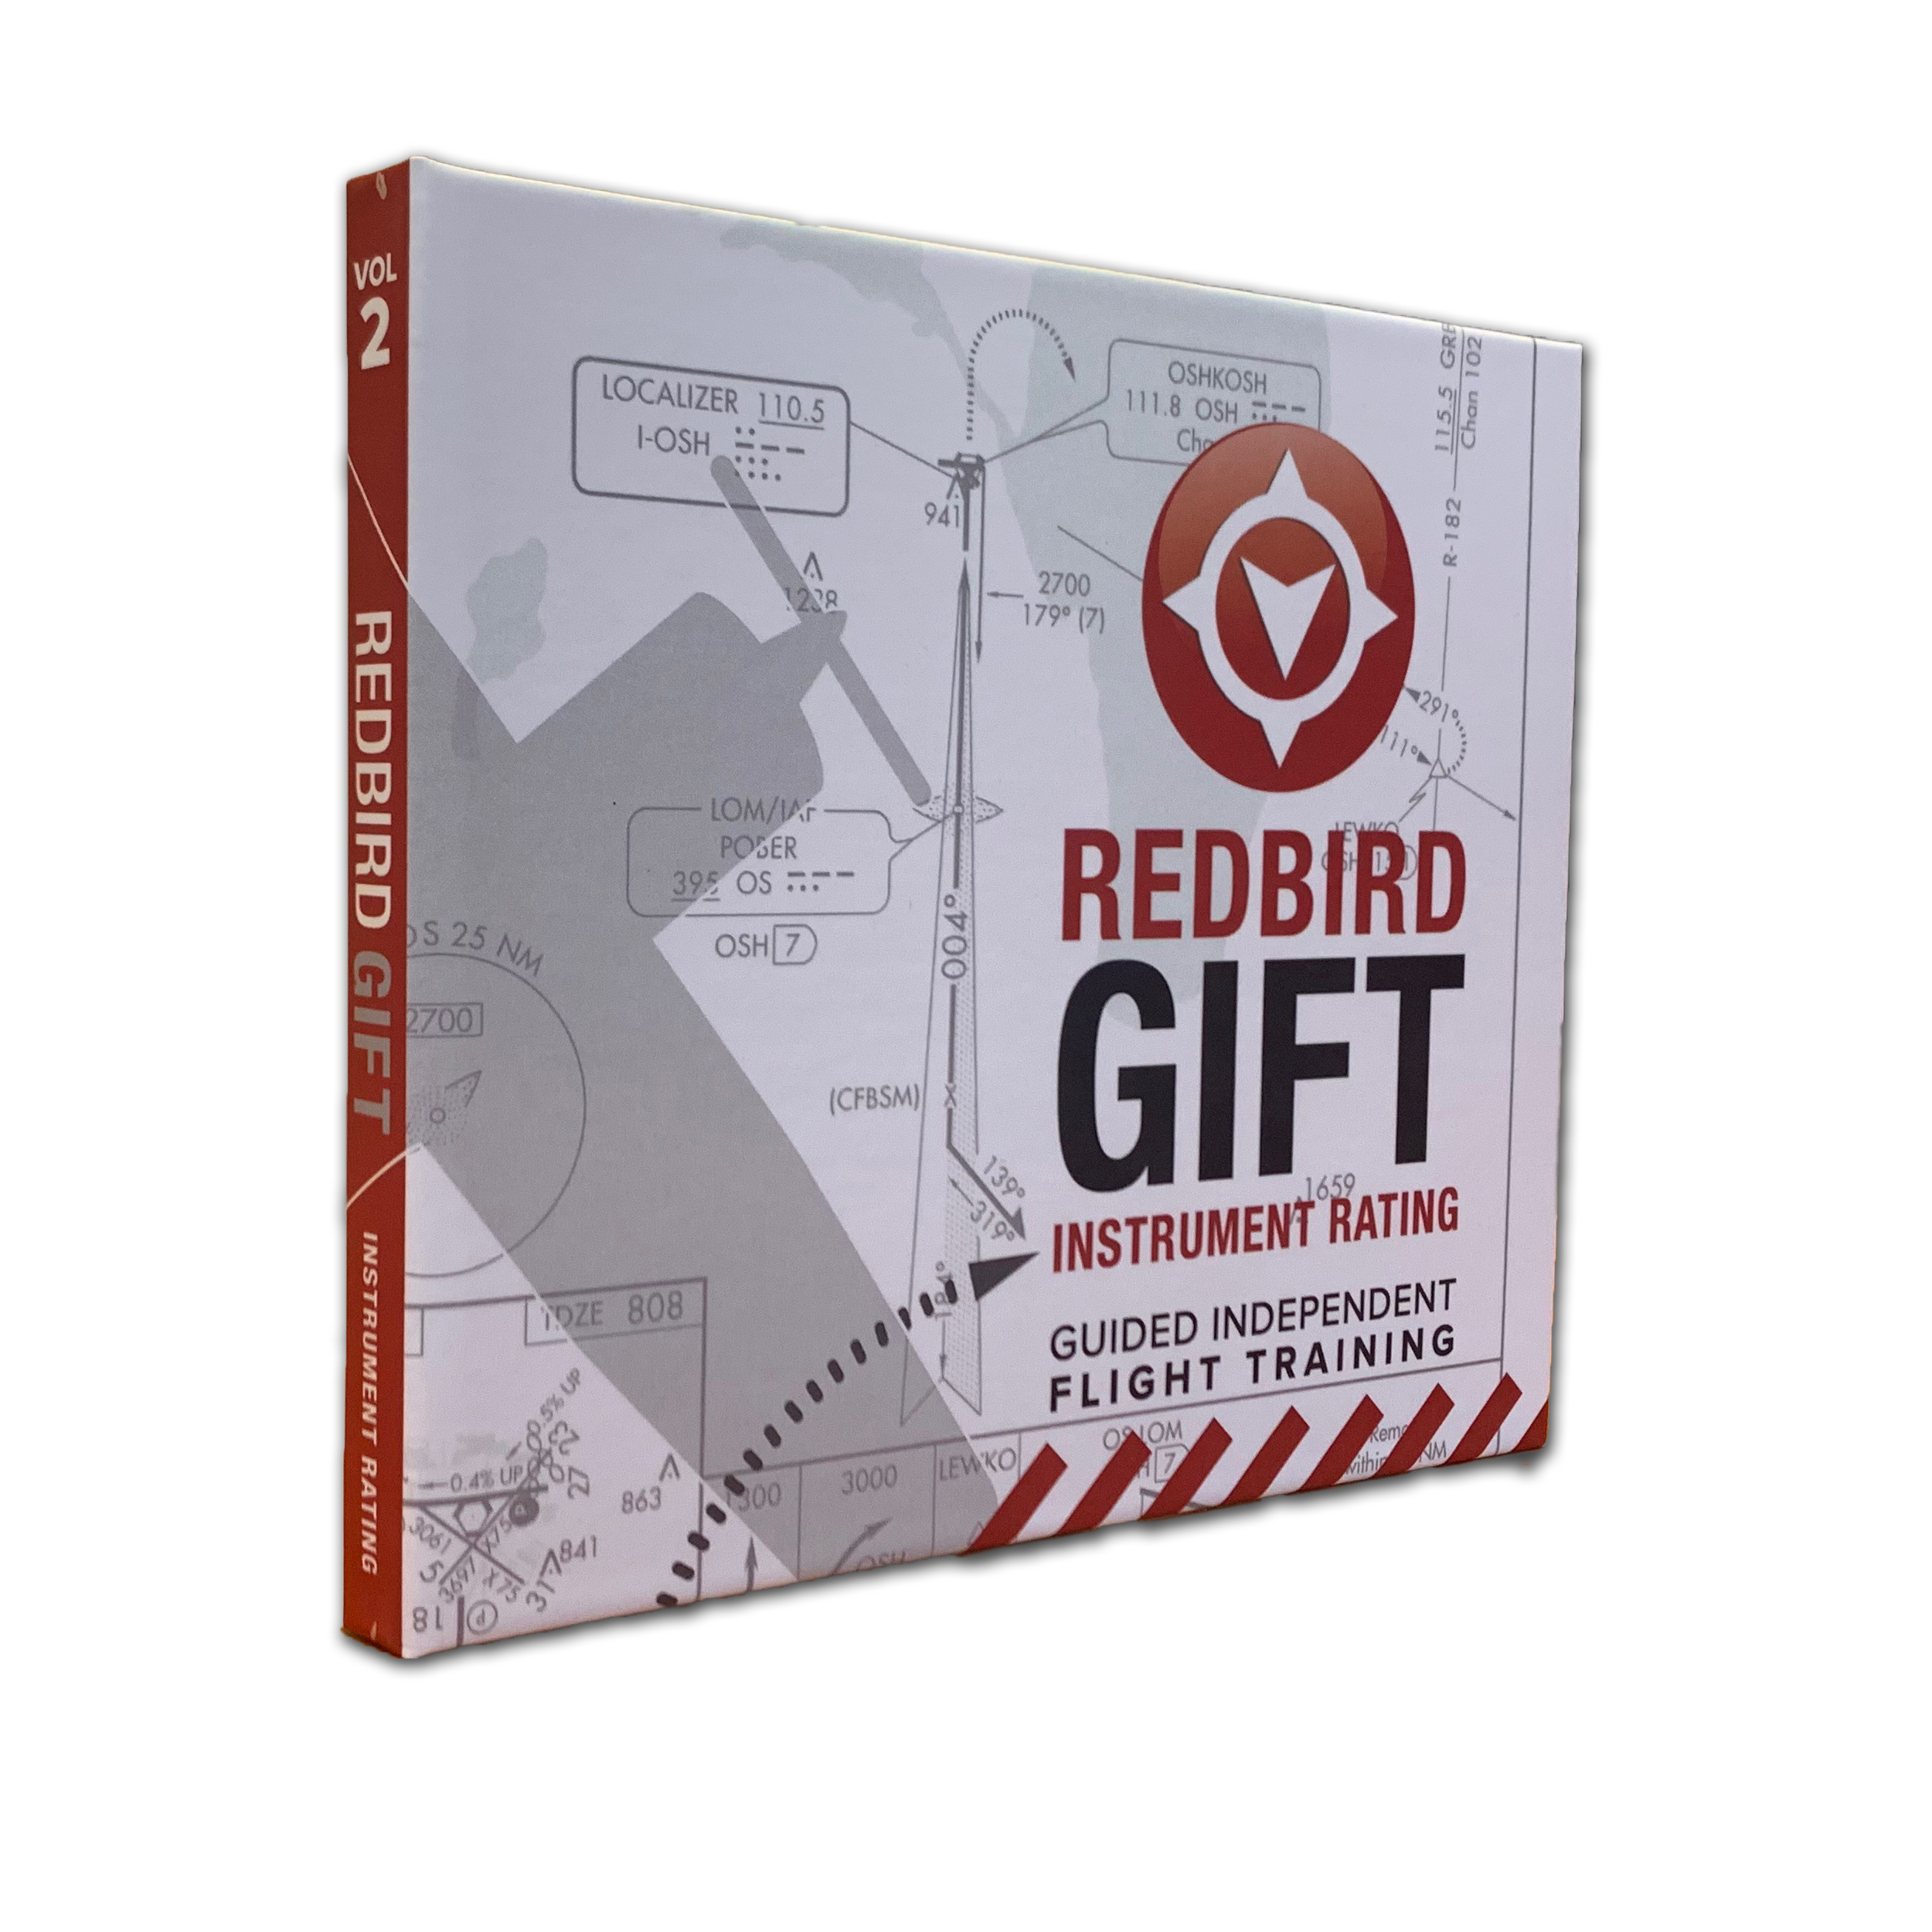 Redbird Flight Launches GIFT Instrument Rating